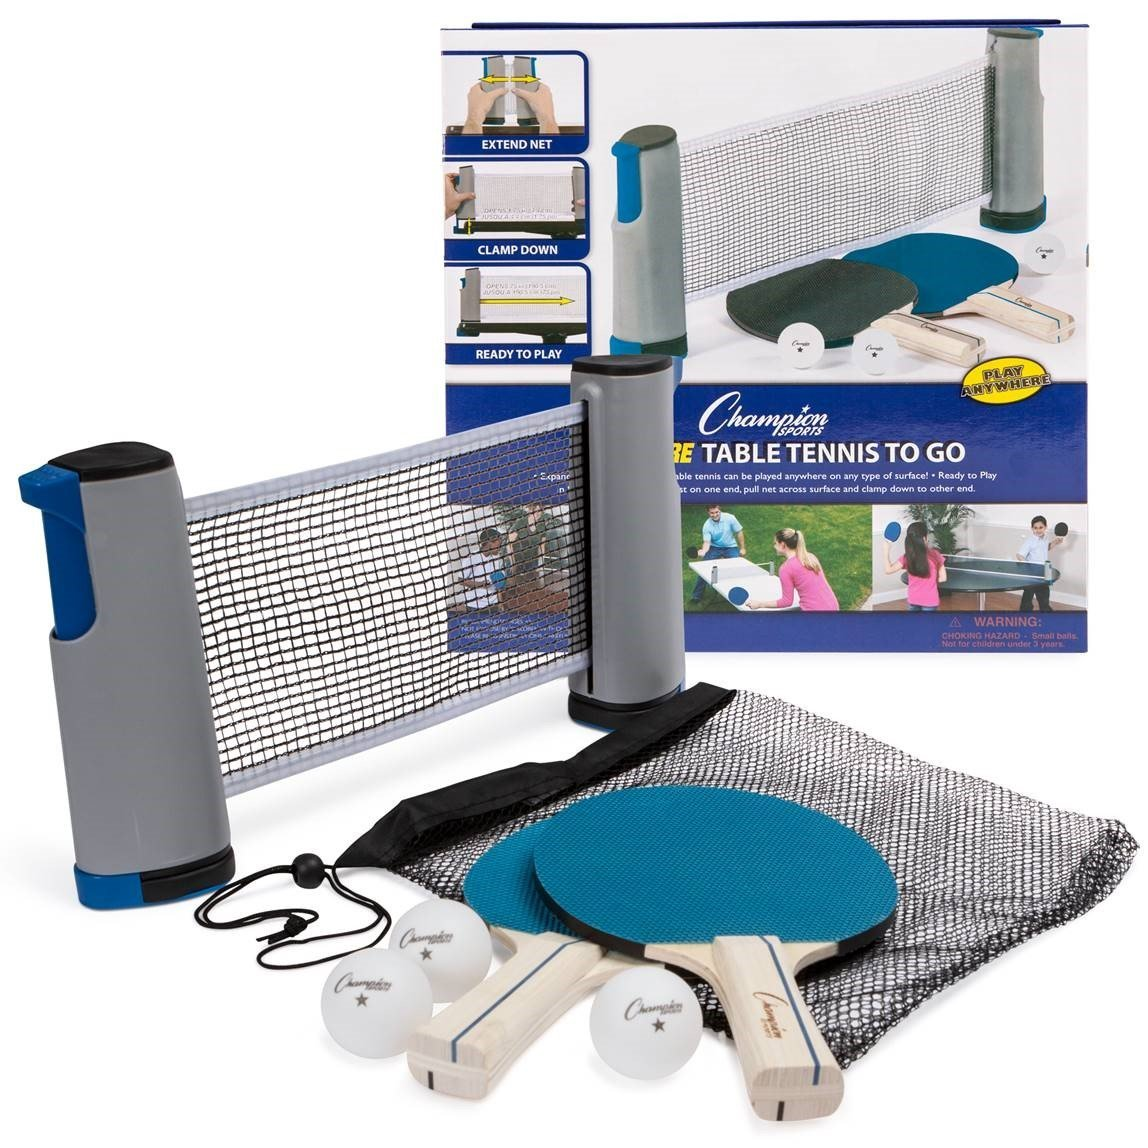 Champion Sports Anywhere Table Tennis: Ping Pong Paddles, Balls, and Portable Net & Post Set To Go